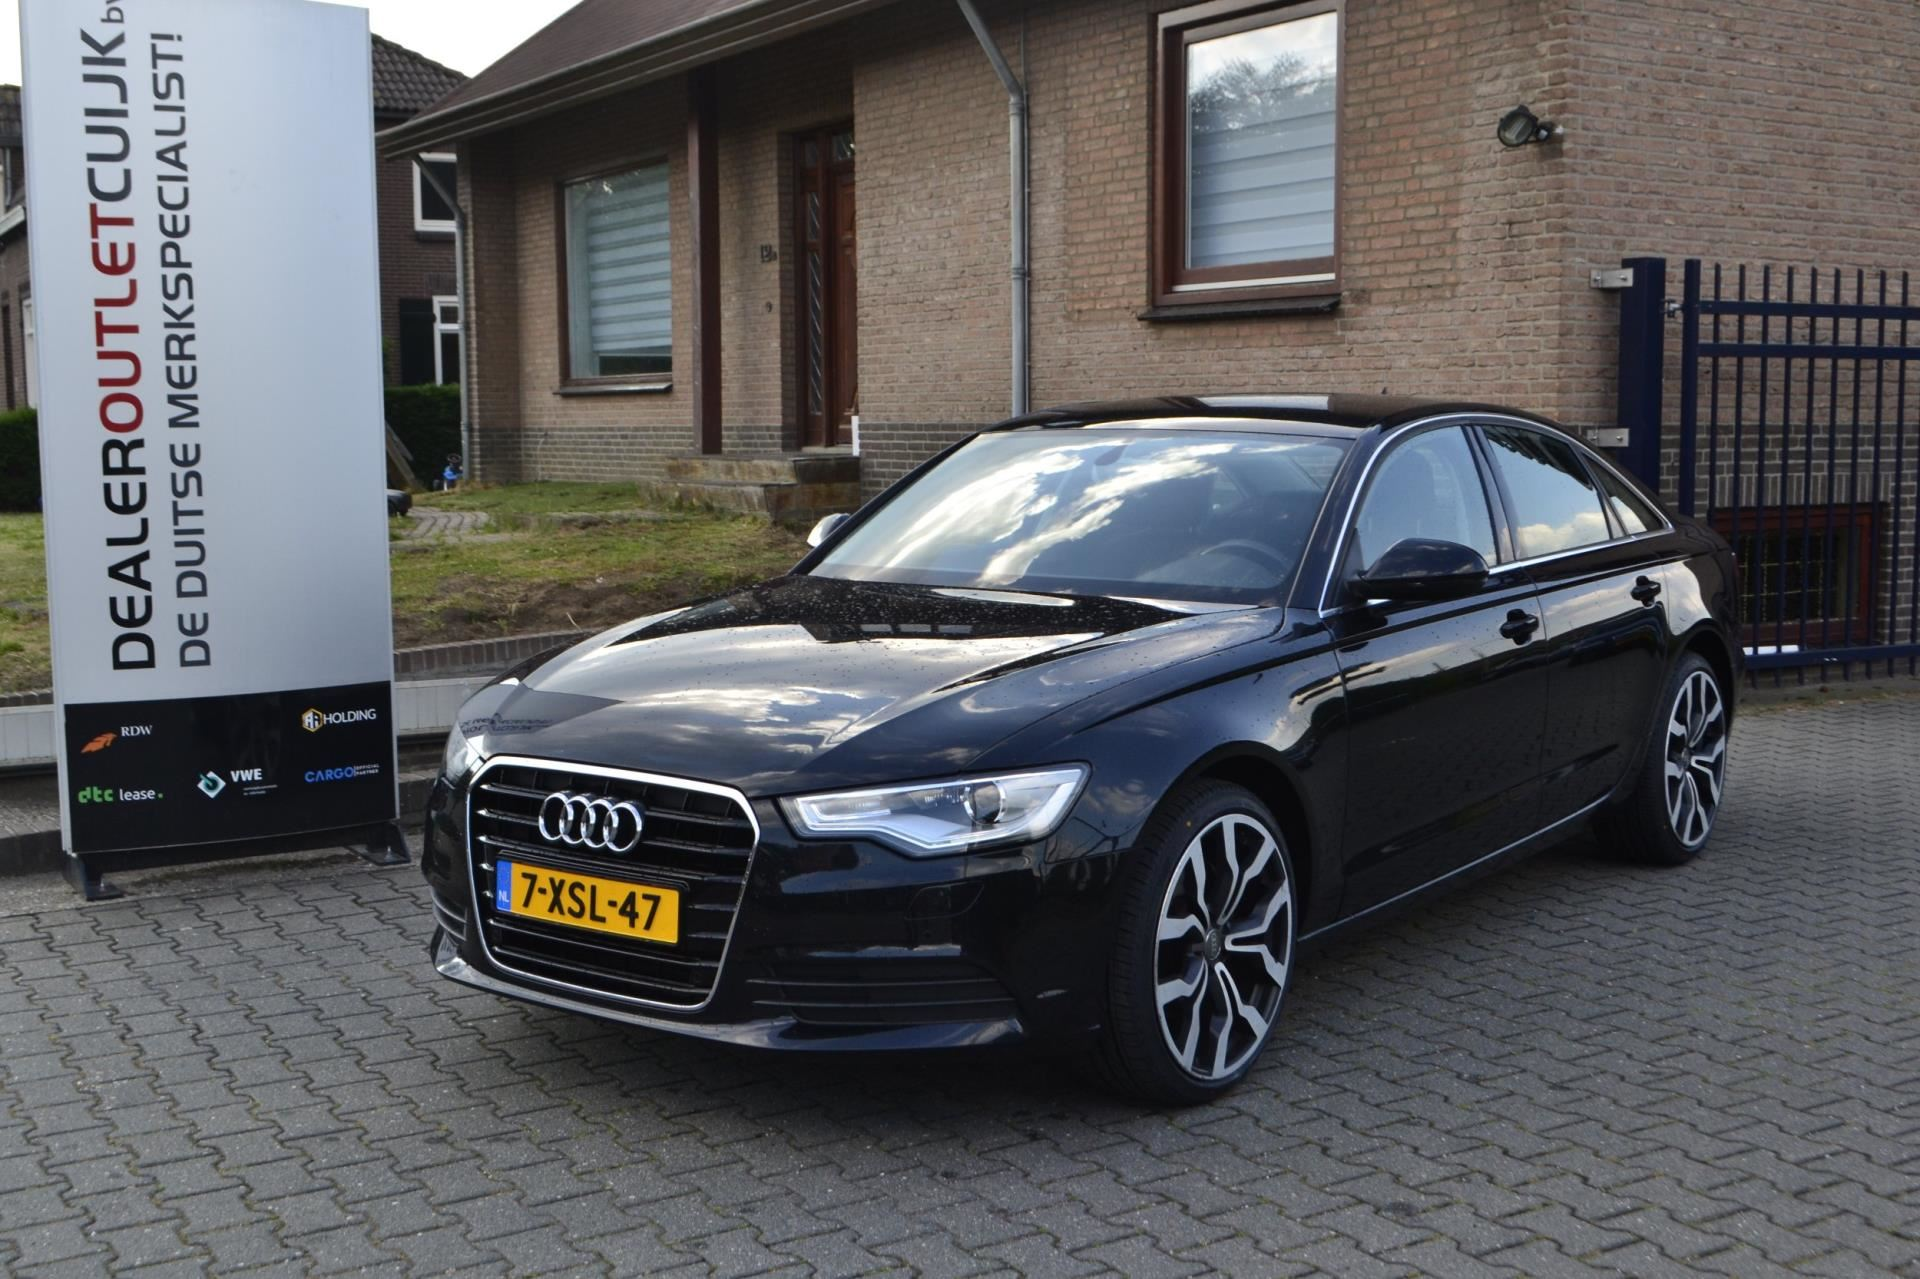 Audi A6 occasion - Dealer Outlet Cuijk b.v.